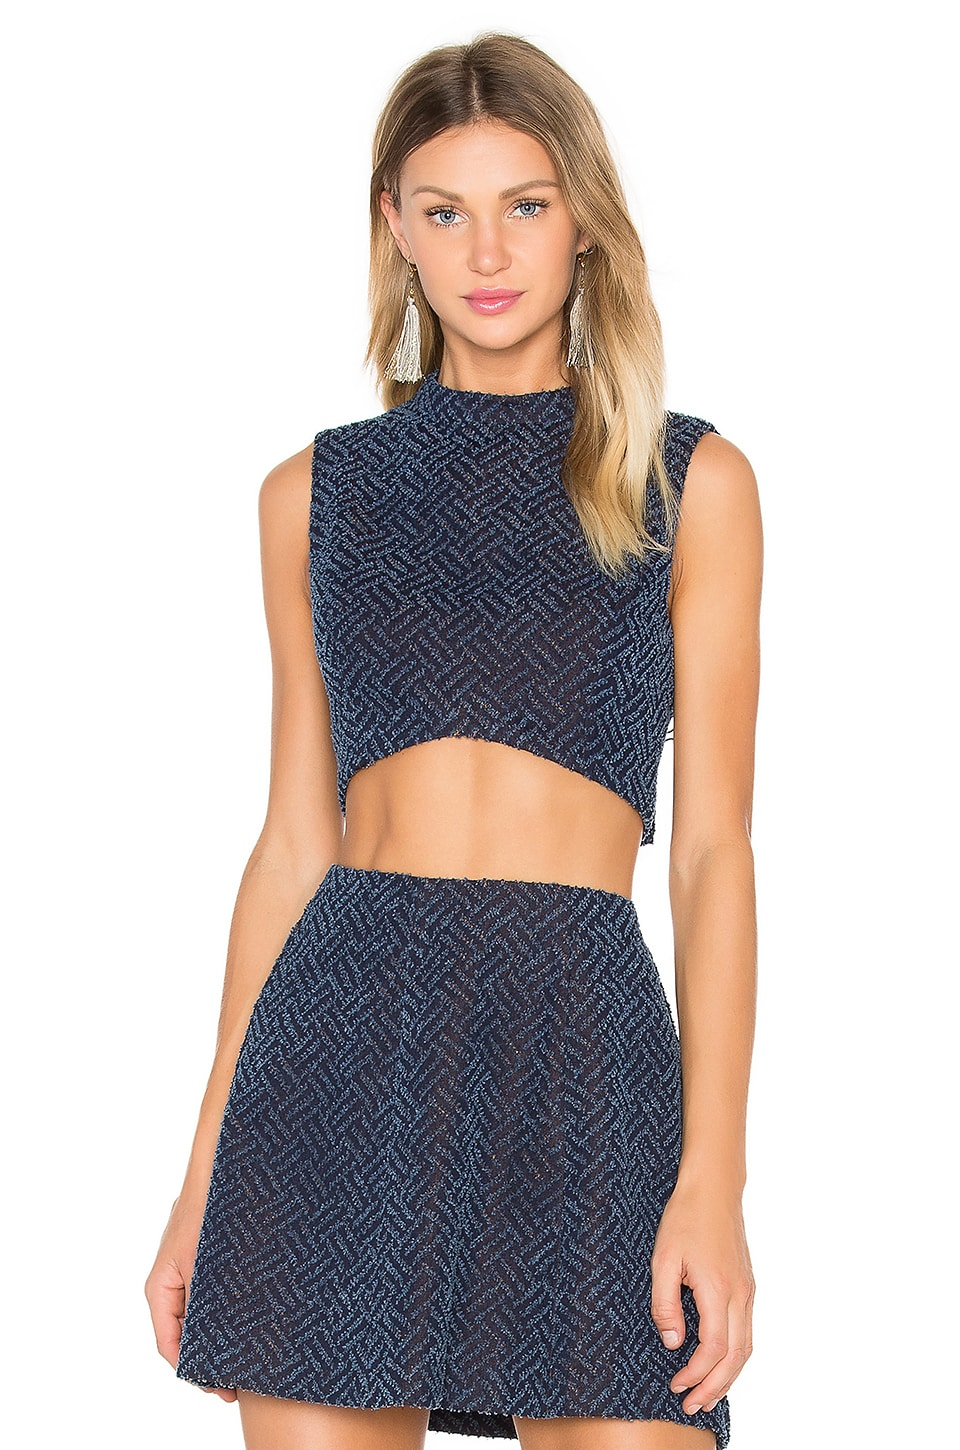 Cassy Crop Top by Lucy Paris